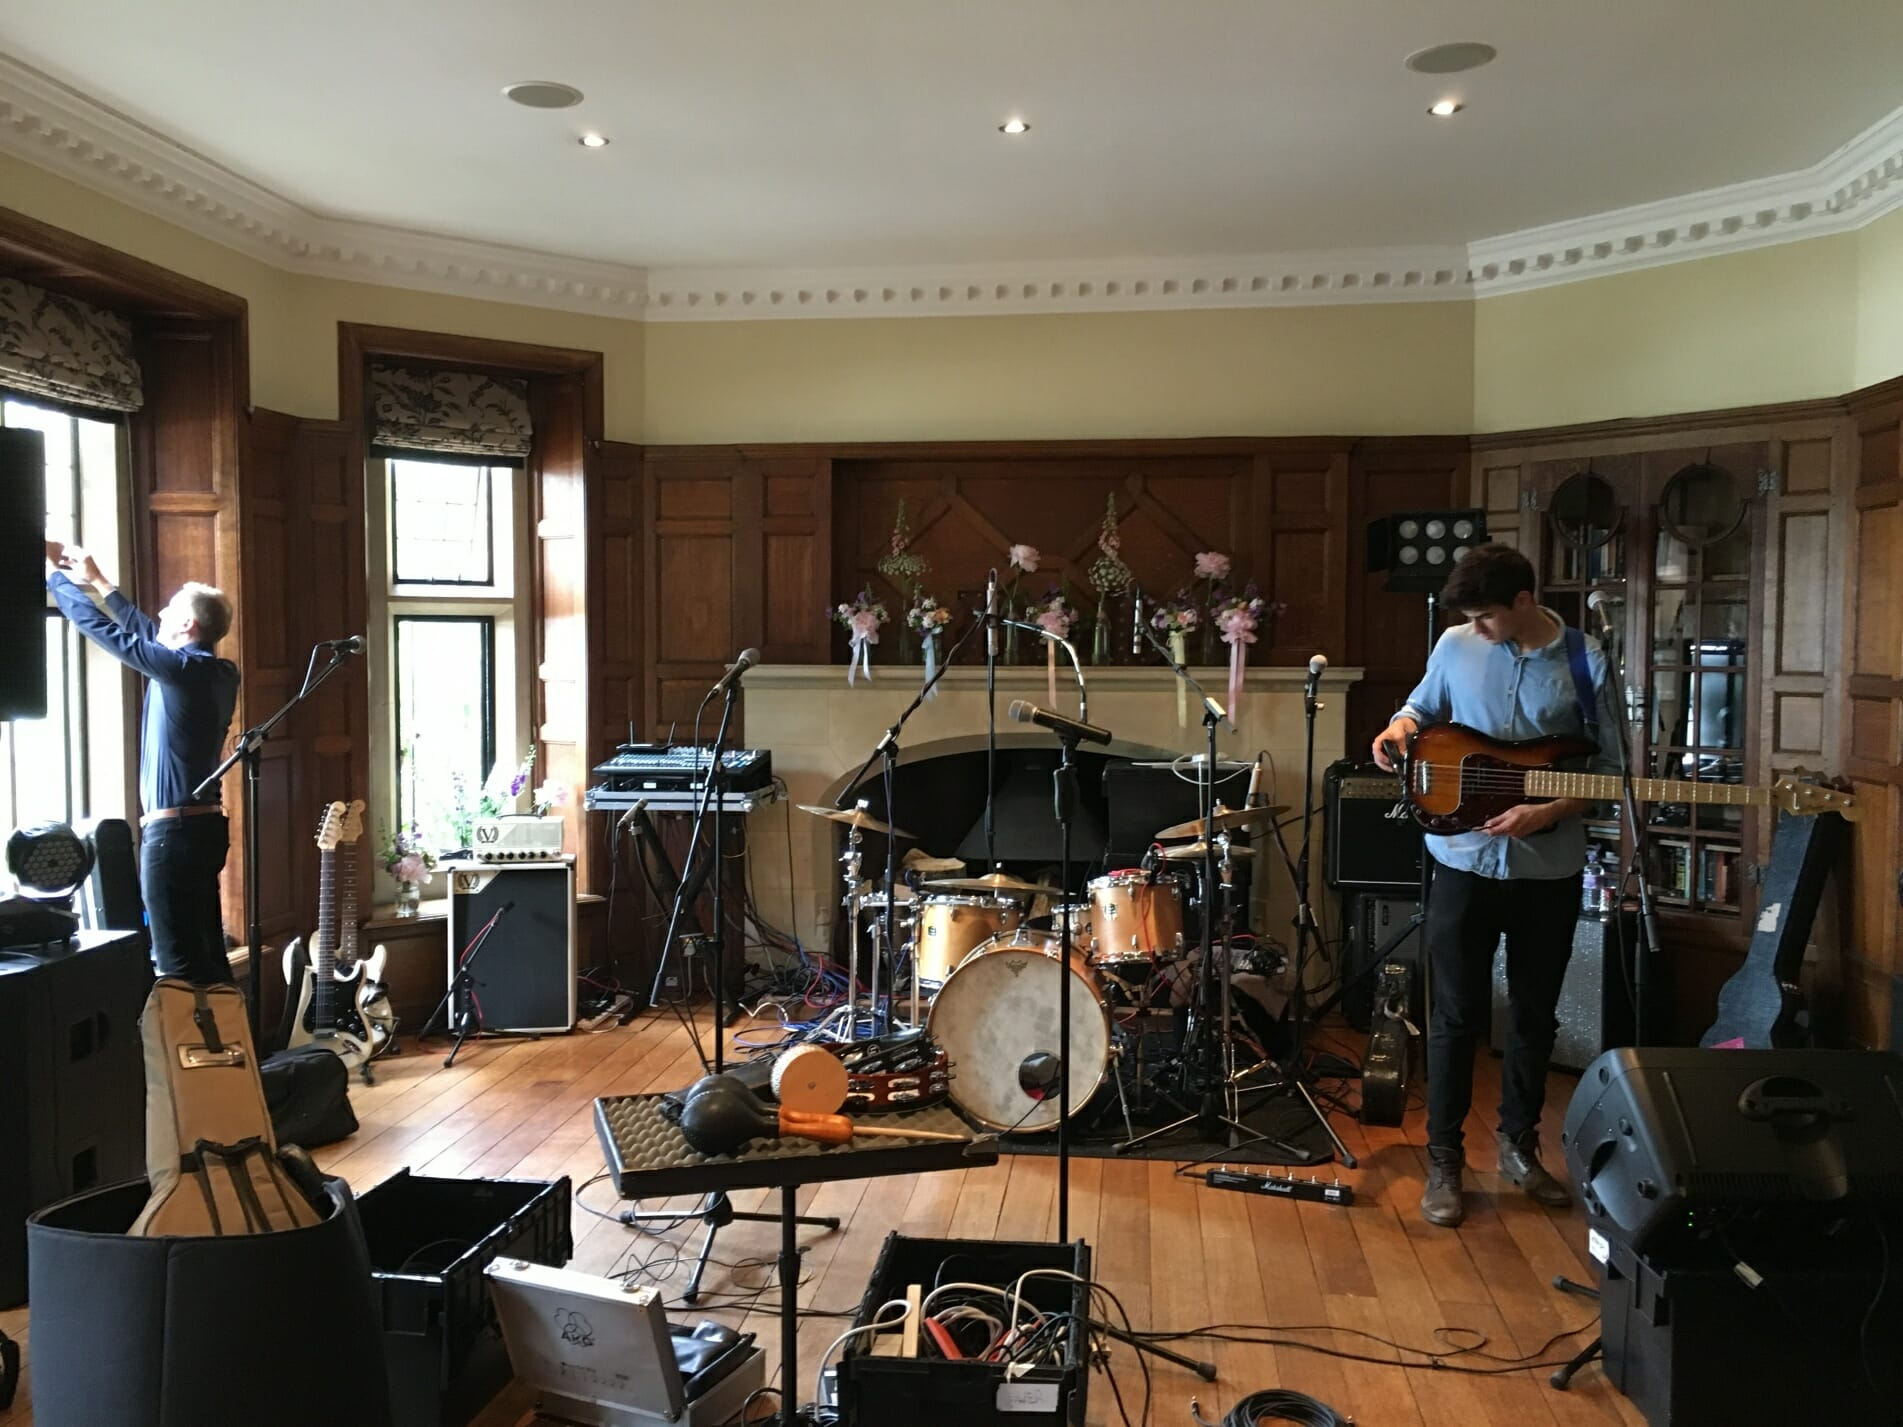 Bianca and Dan, Wedding at Chaffeymoor Grange, Wedding venue Dorset, The Zoots, Zoots band, Band in Dorset, Band for hire Dorset,